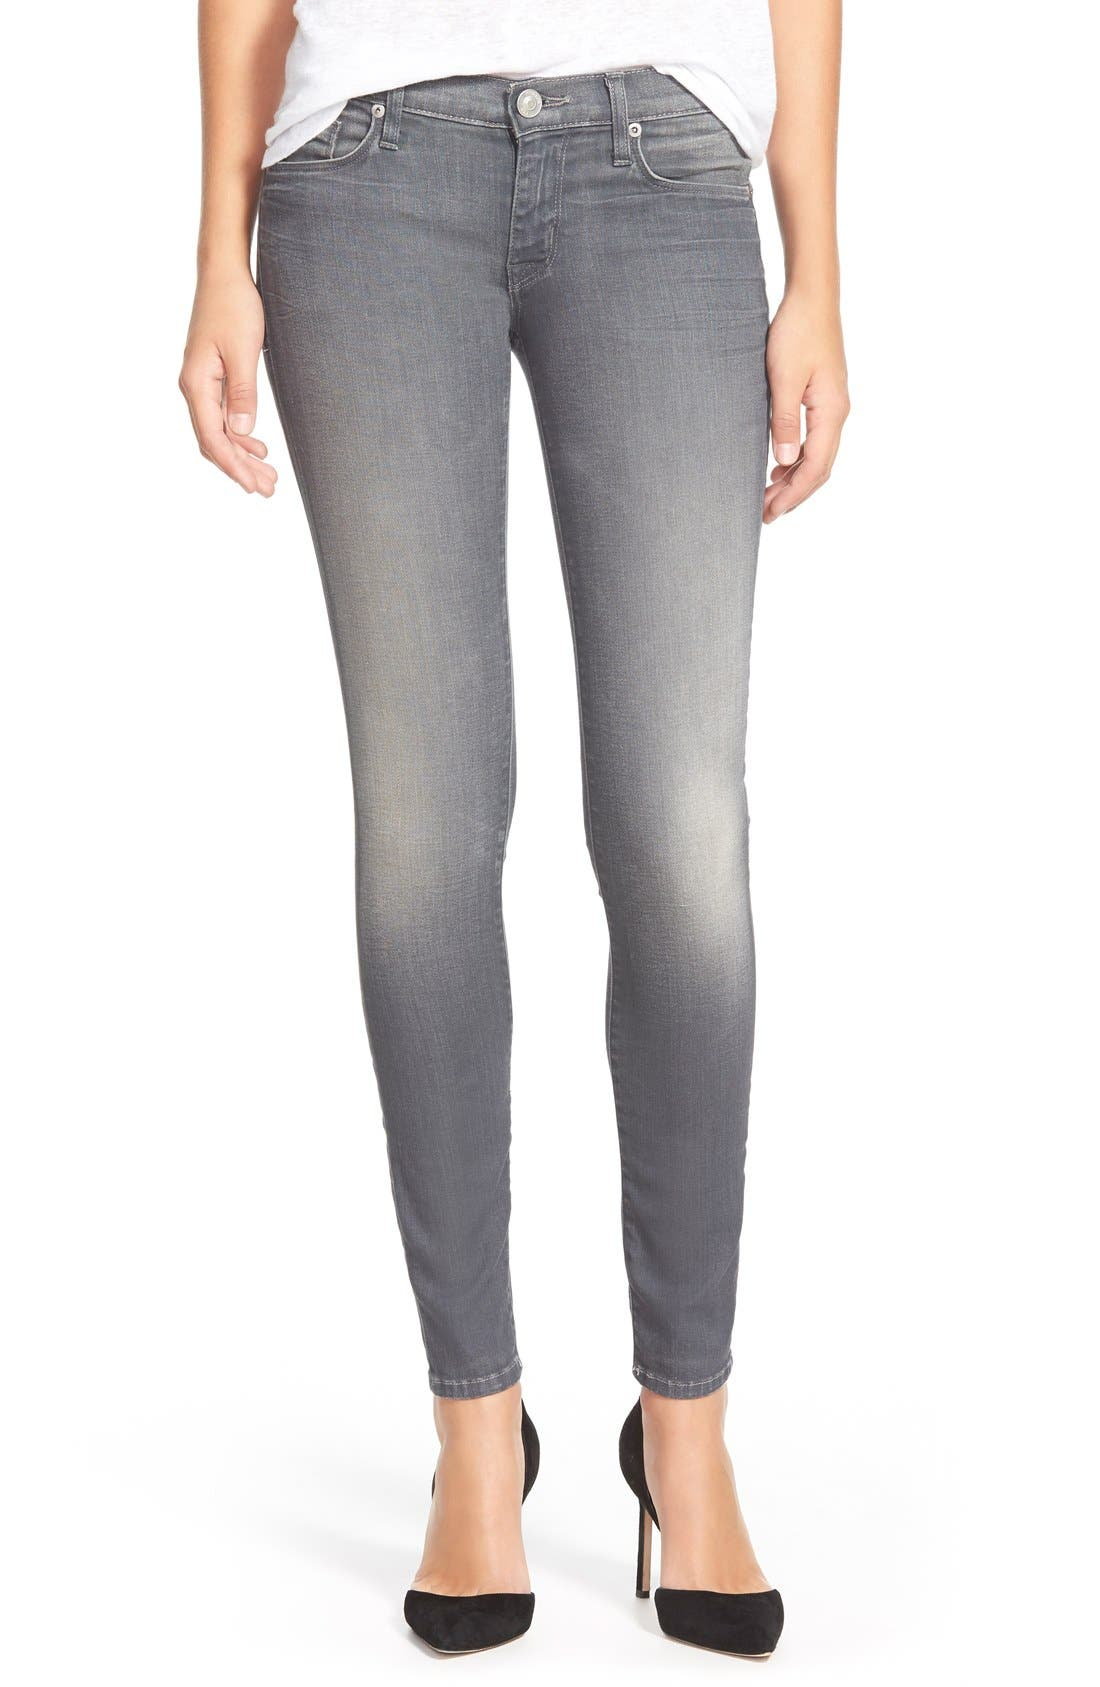 Main Image - Hudson Jeans 'Krista' Ankle Skinny Jeans (Wreckless)